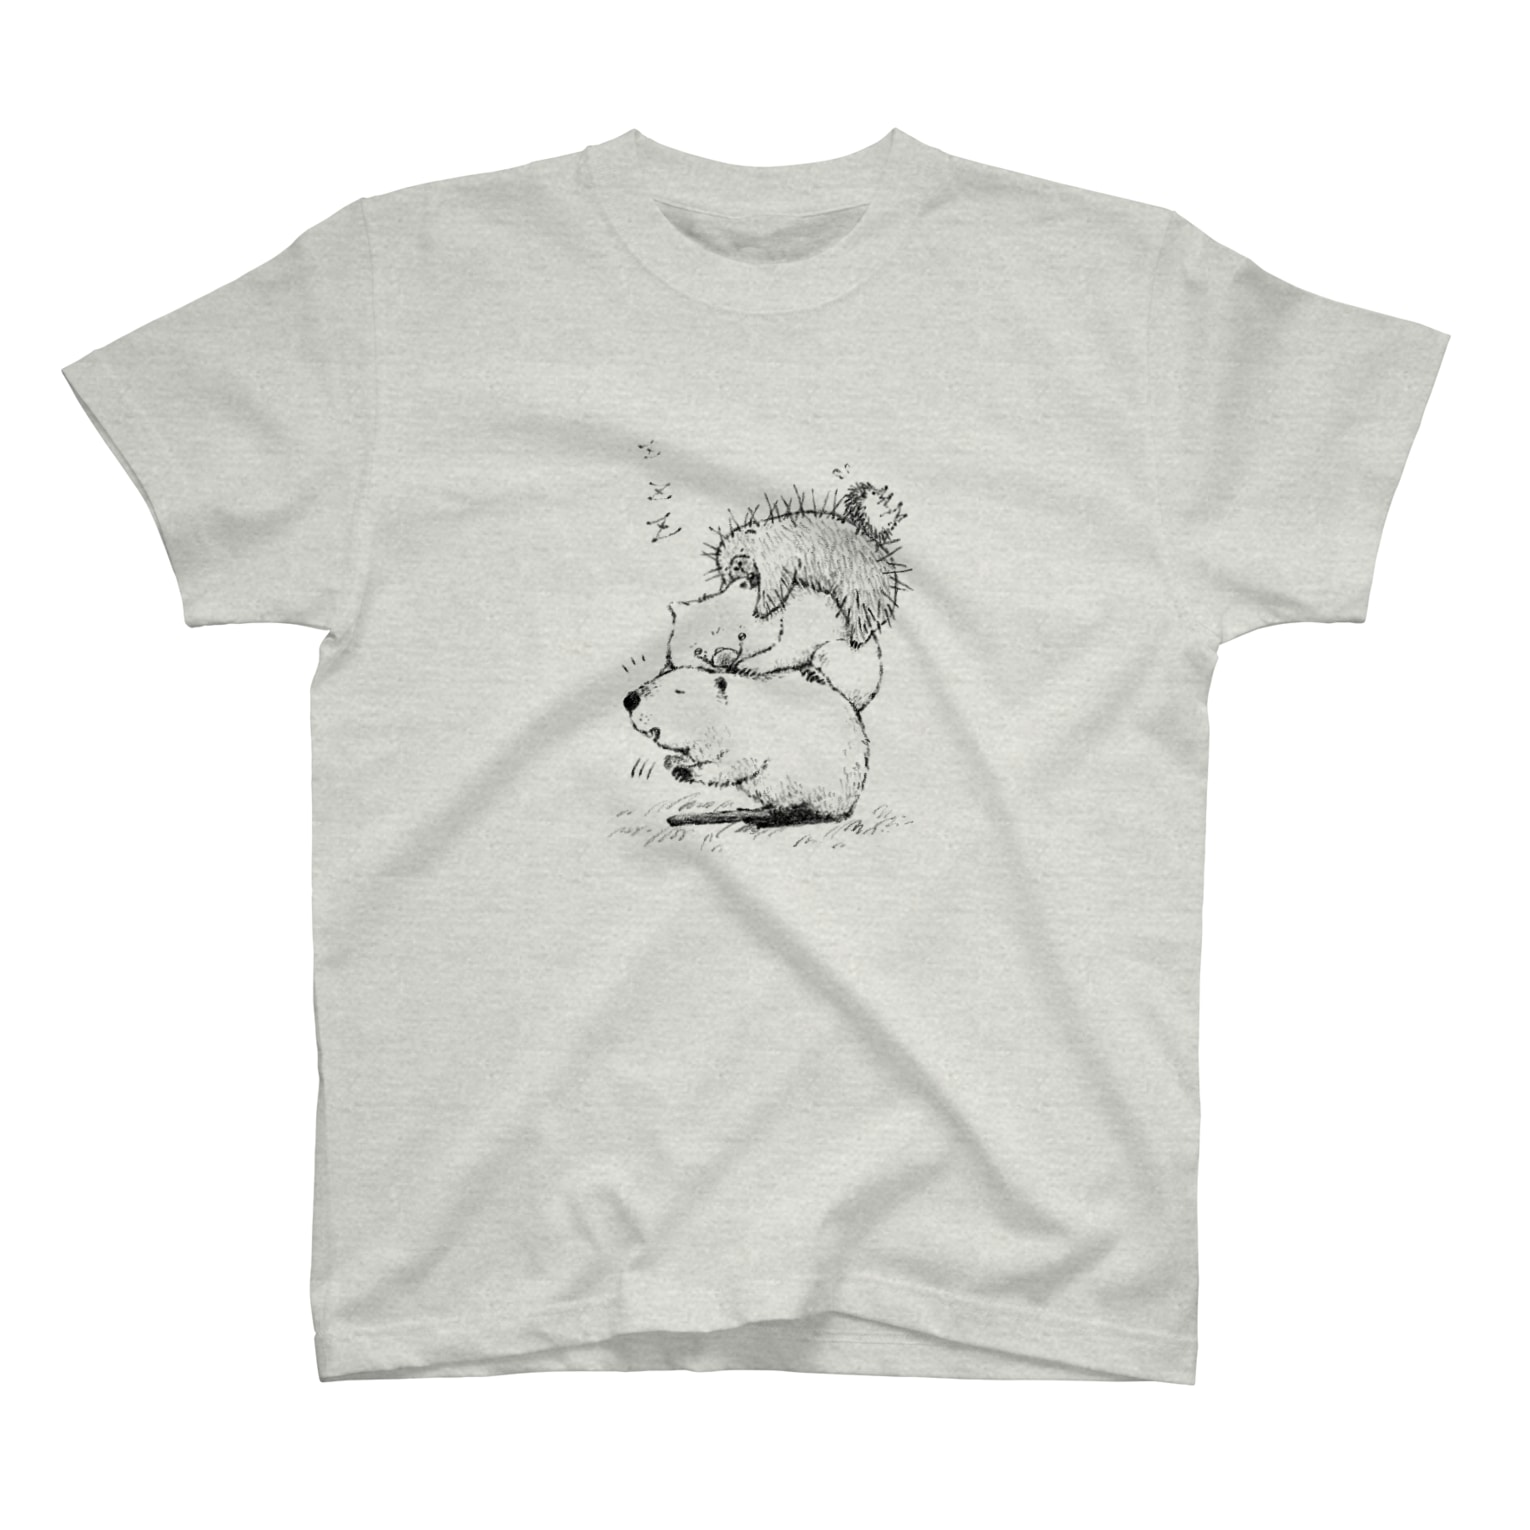 It is Tomfy here.のずんぐり〜ずの居眠り隊 T-shirts